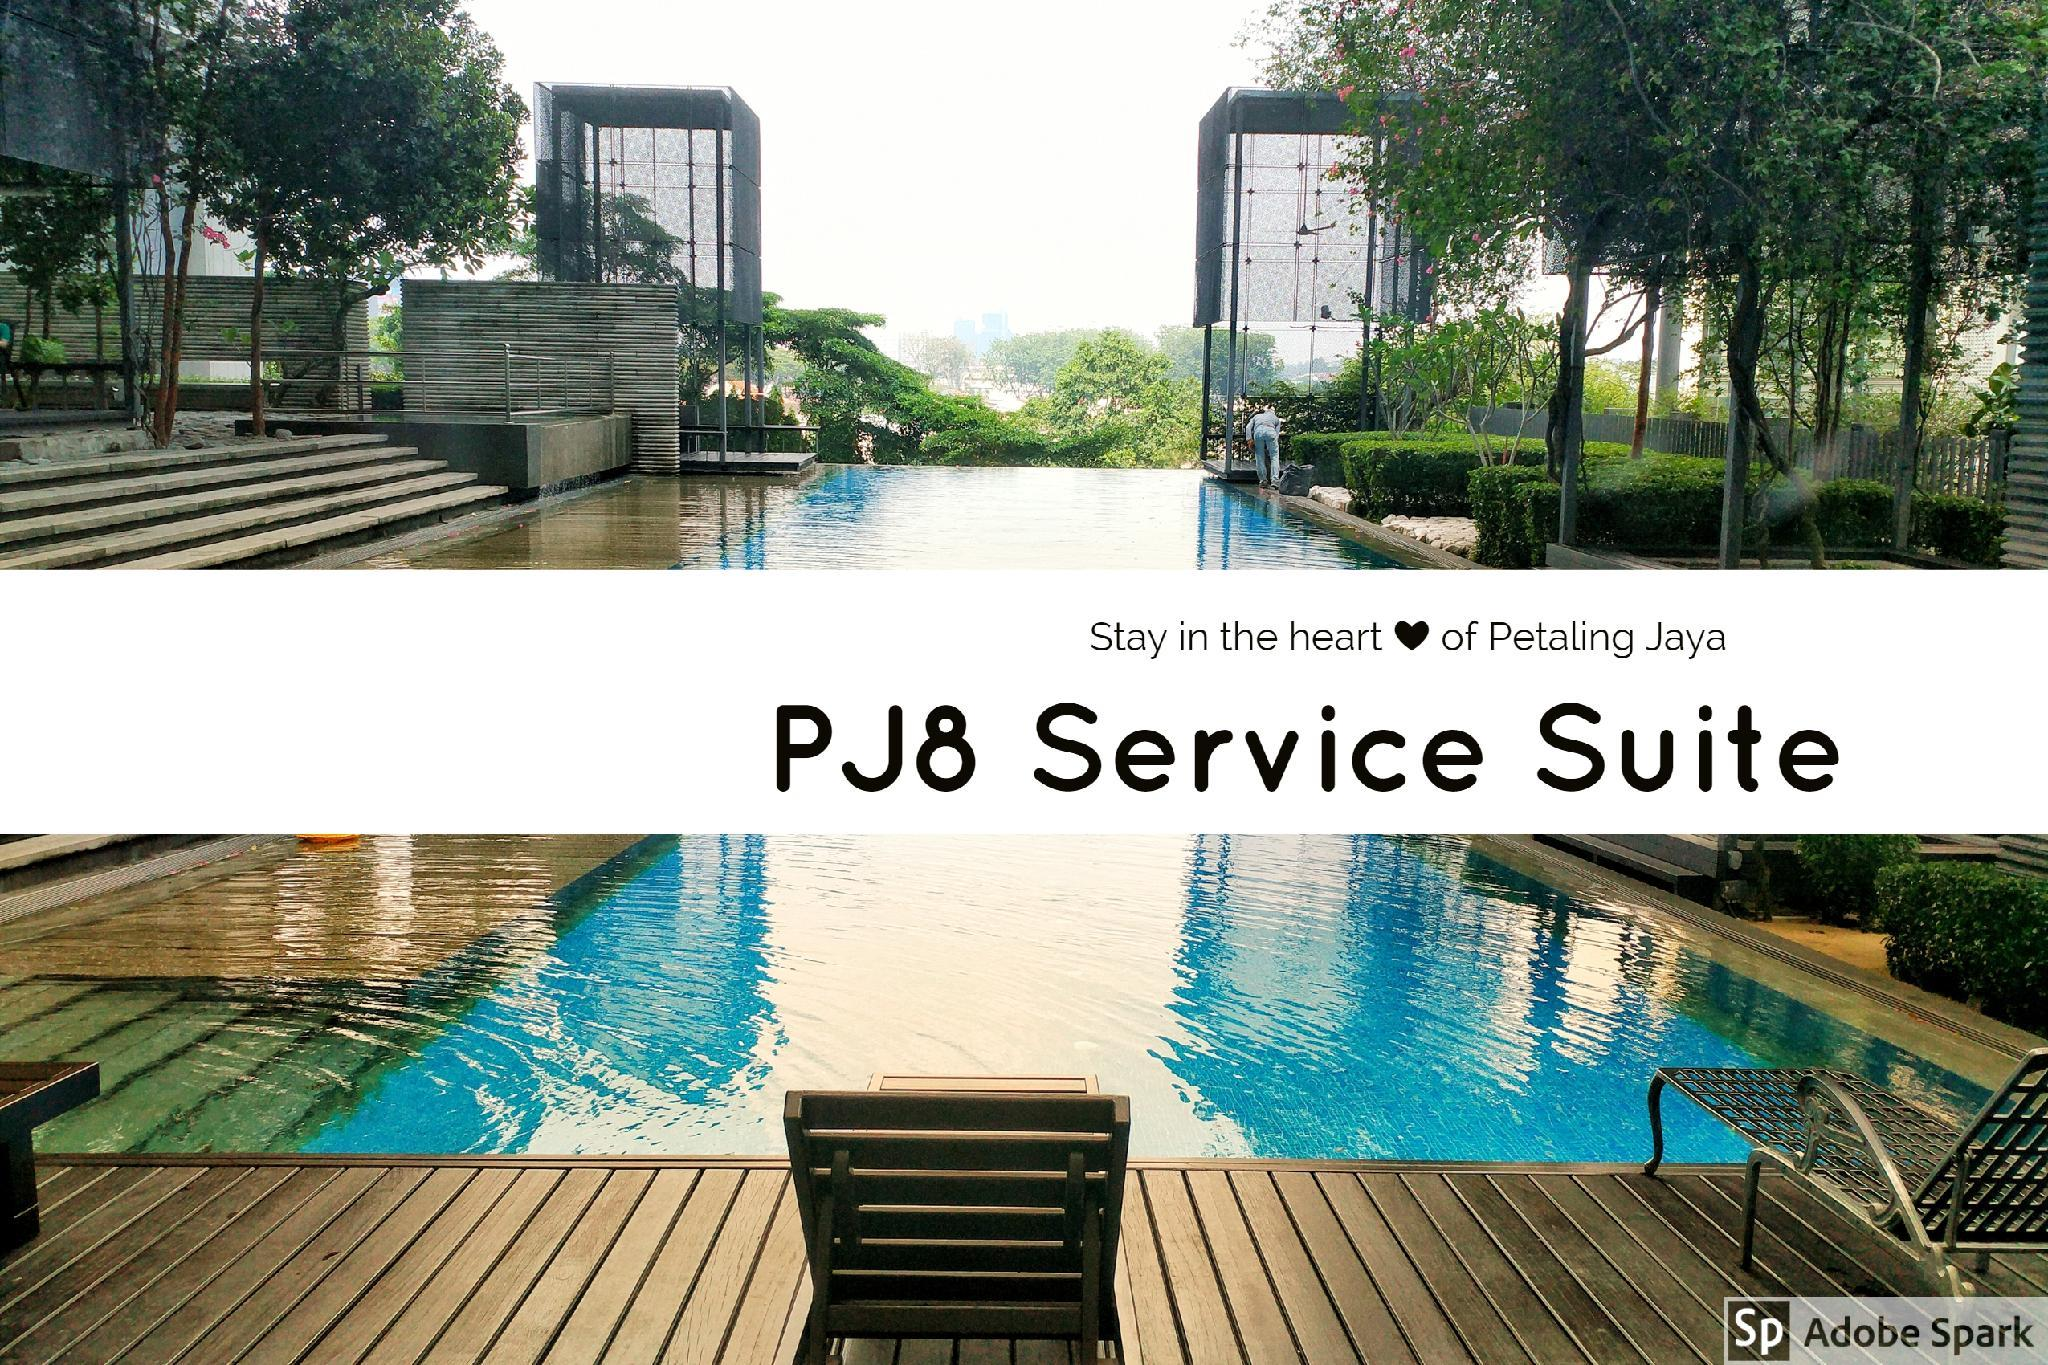 PJ8 Service Suite 2 BR Pool View And Near Train